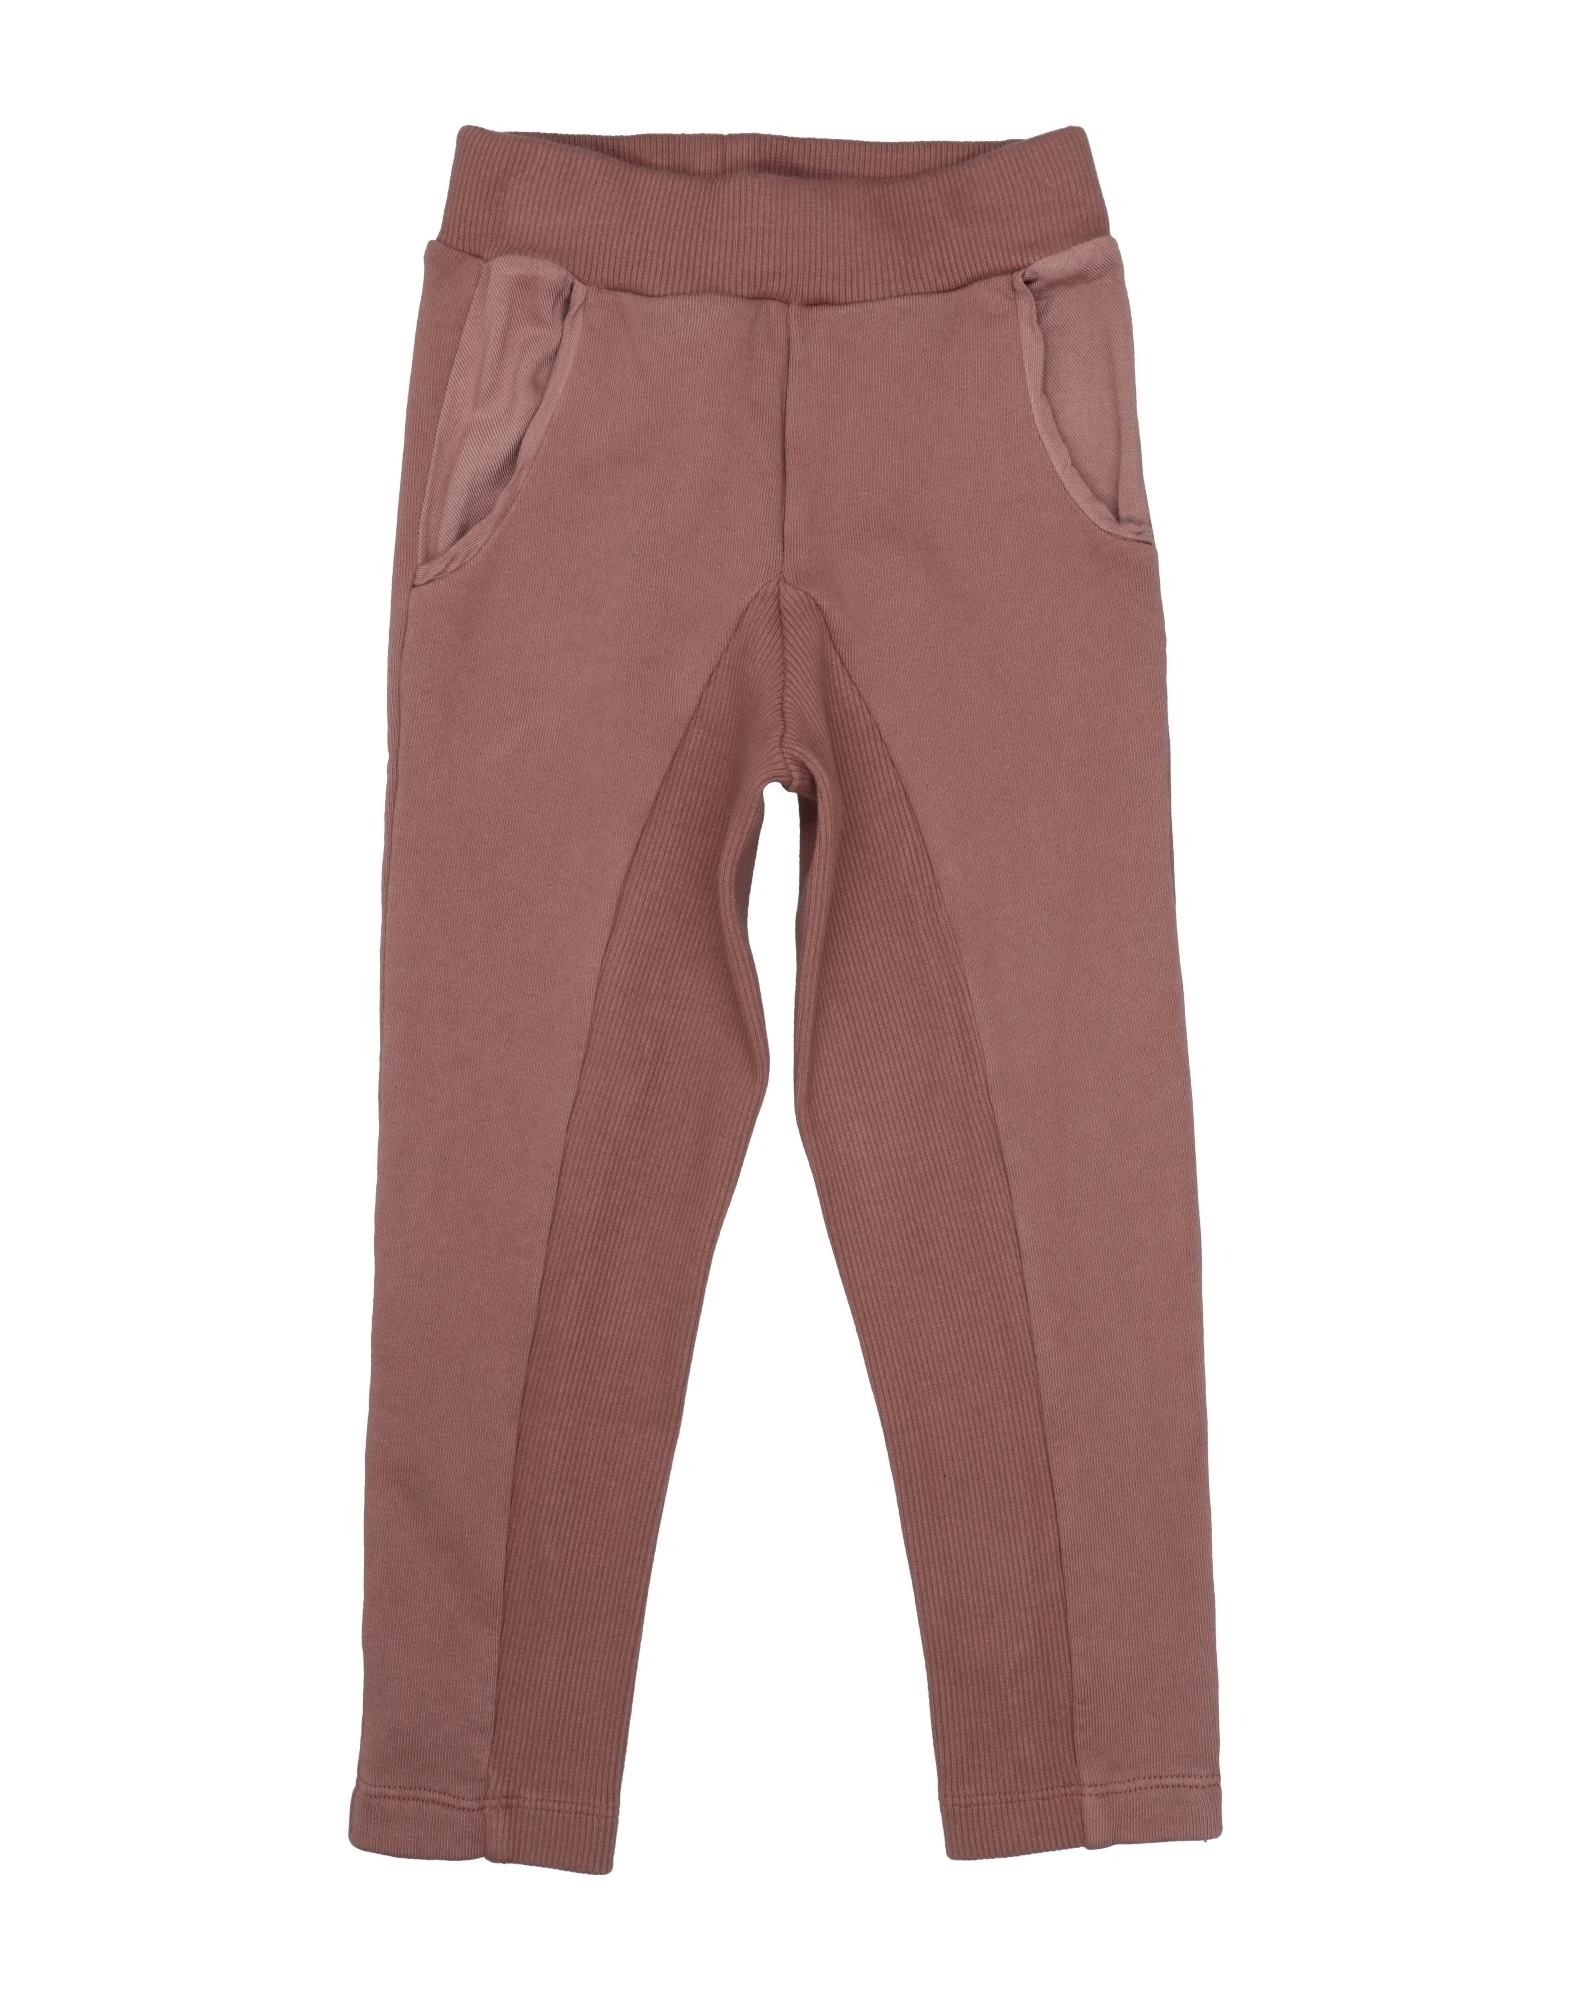 Miss Pois Kids' Casual Pants In Brown